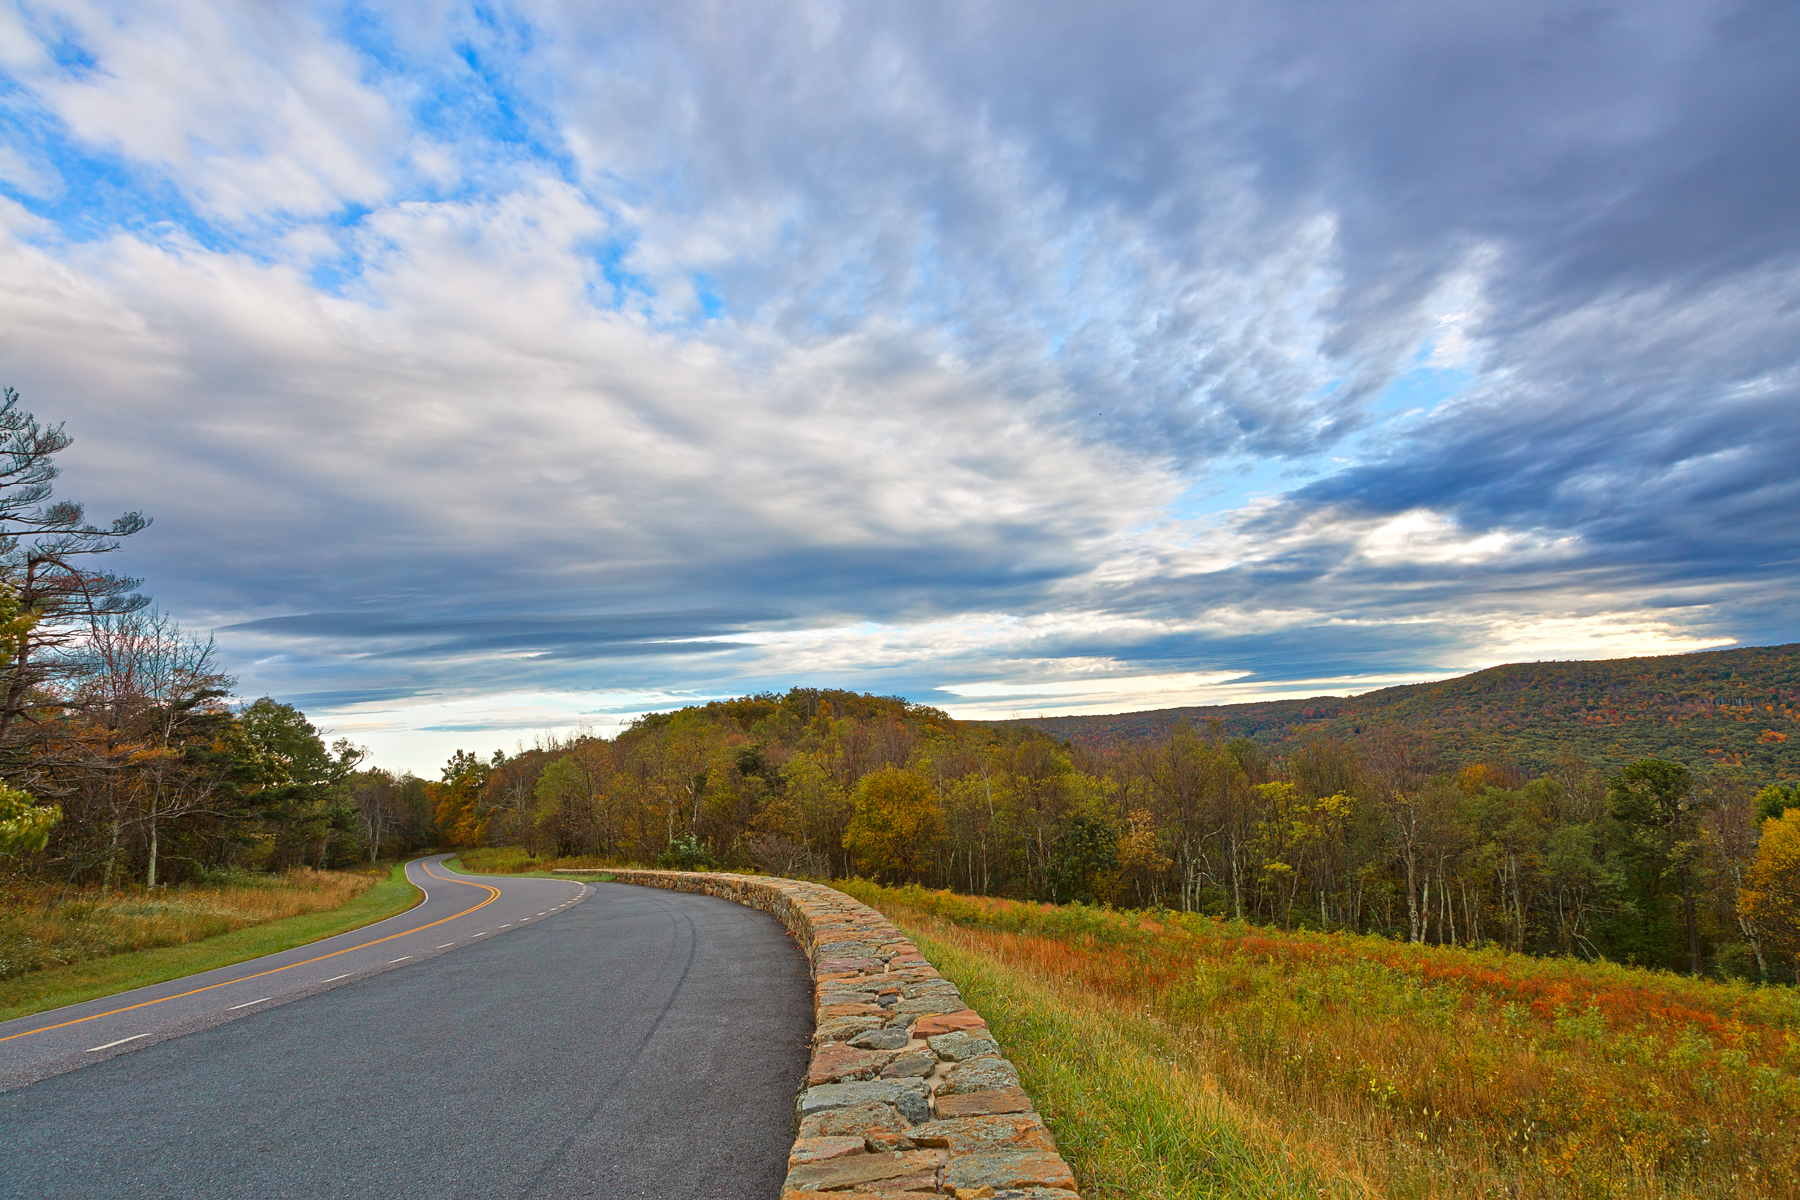 Skyline Drive - HDR, America, Plant, Scenery, Scene, HQ Photo